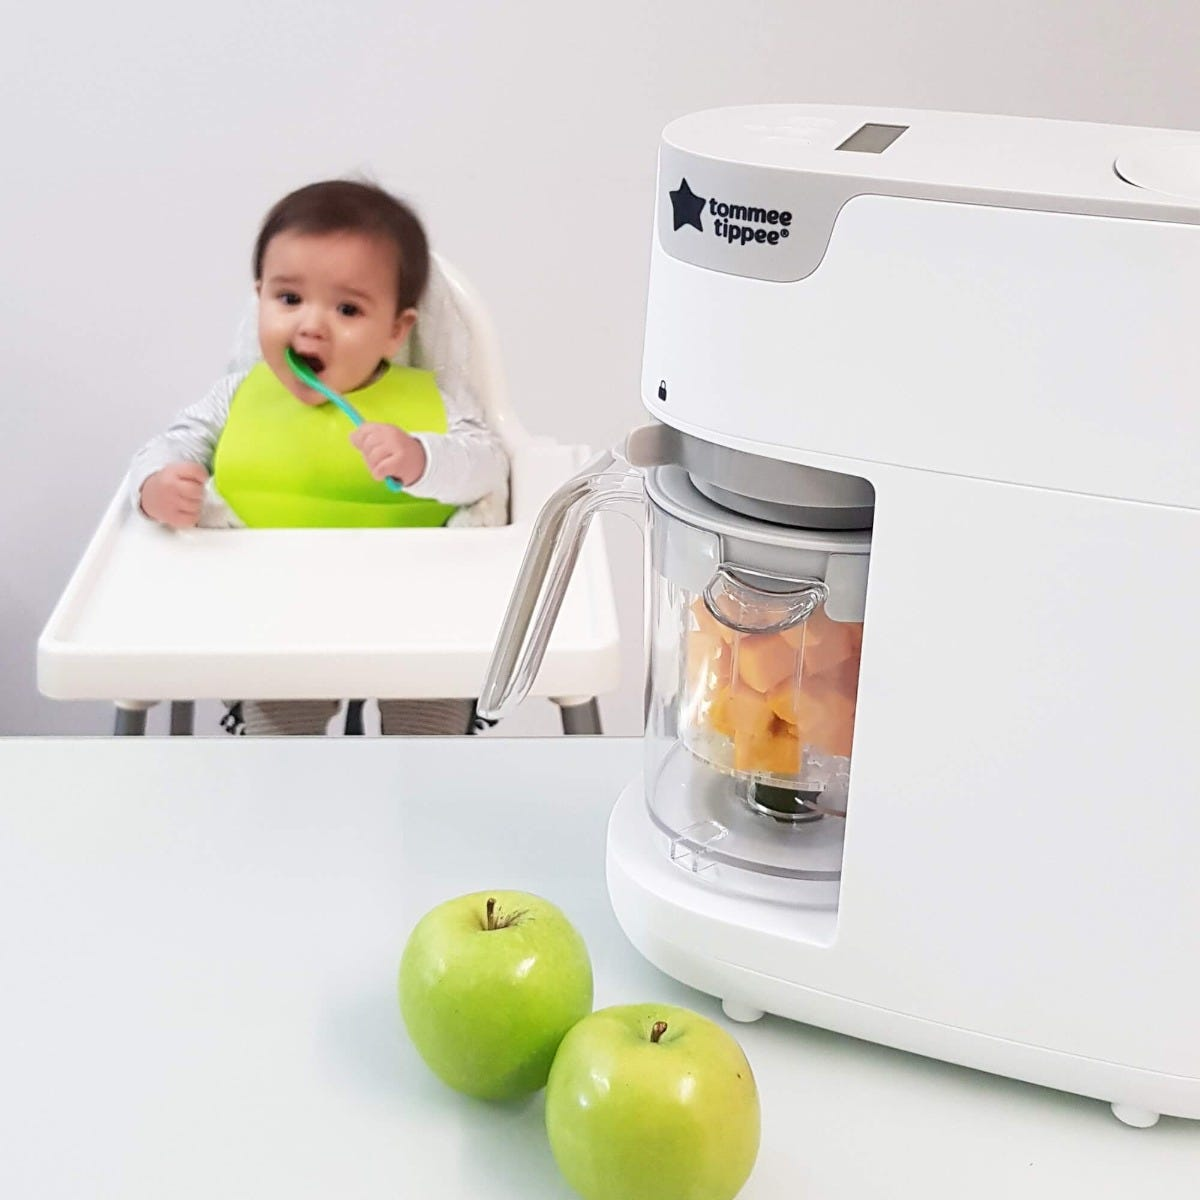 white-Quick-Cook-Baby-Food-Maker-containing-chopped-vegetables-and-baby-in-background-in-highchair